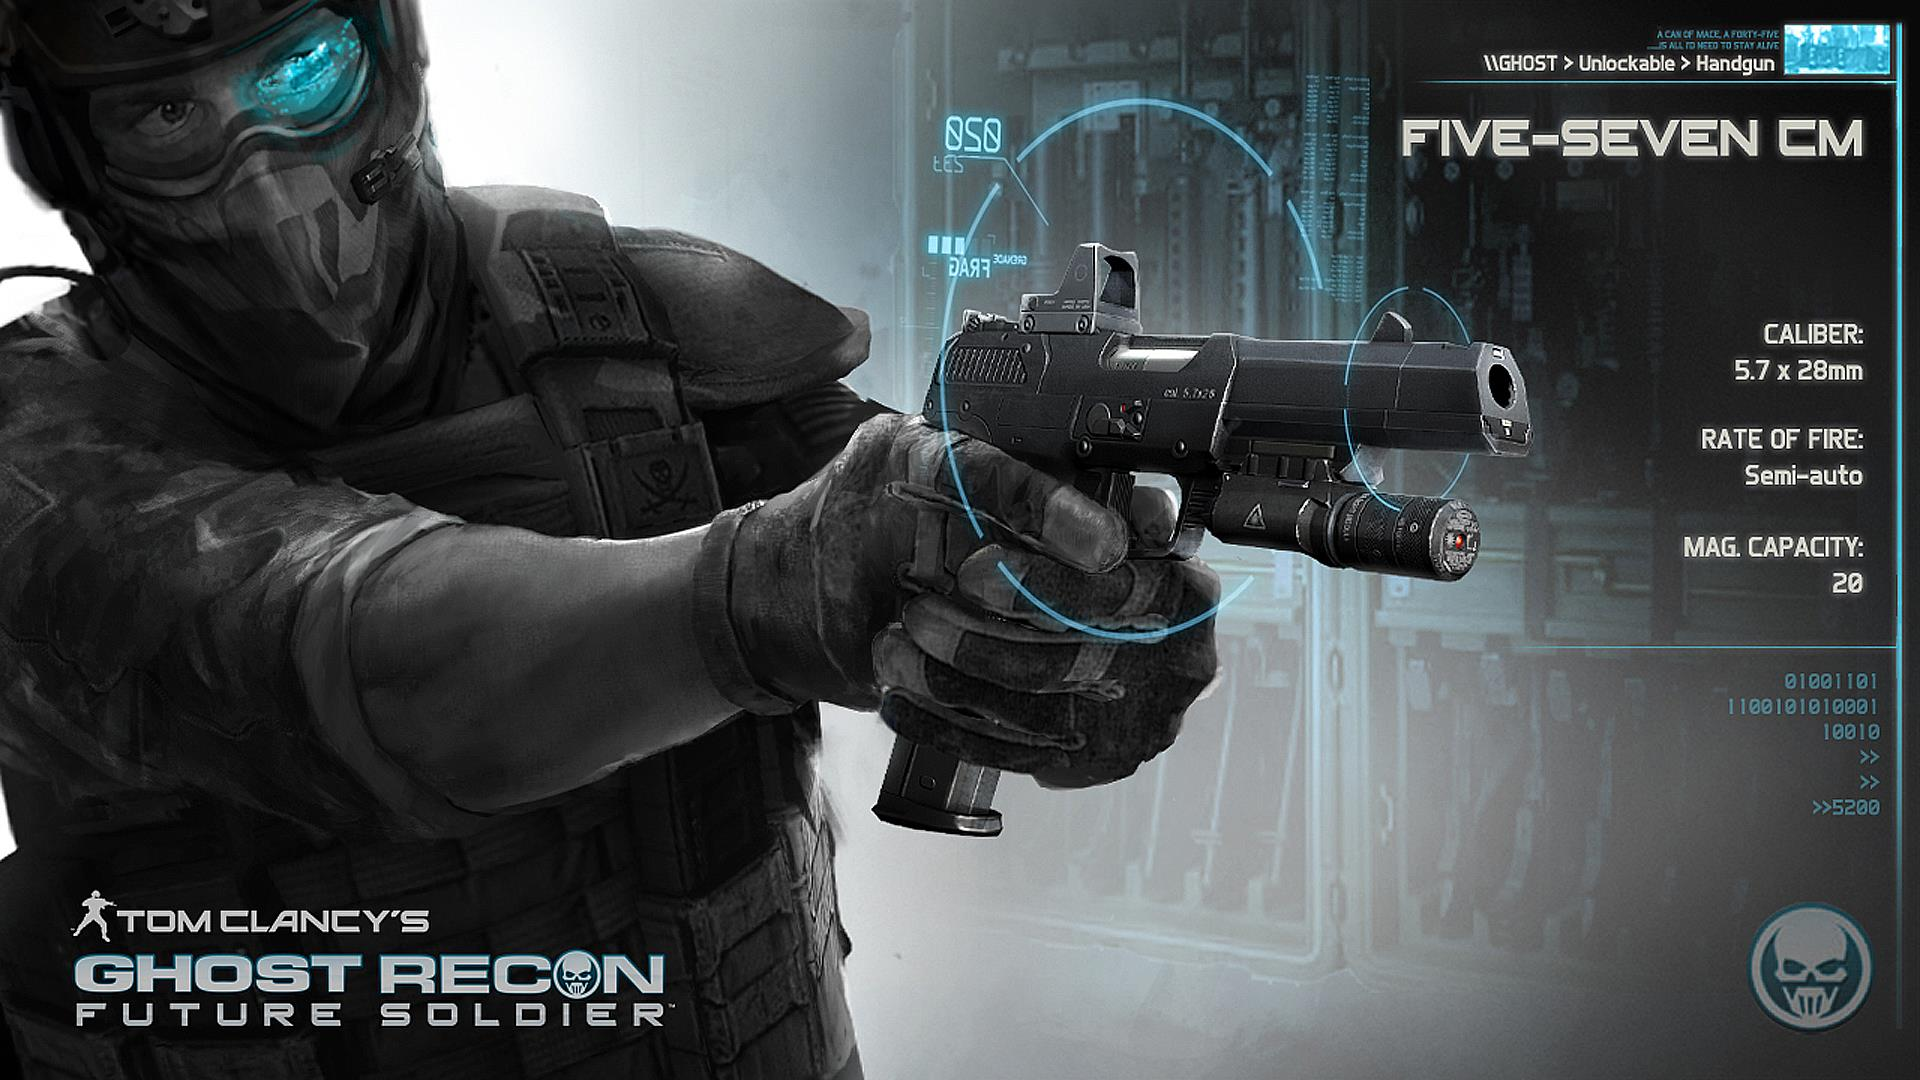 Ghost 3d Wallpaper Download Tom Clancy S Ghost Recon Future Soldier Hd Wallpaper